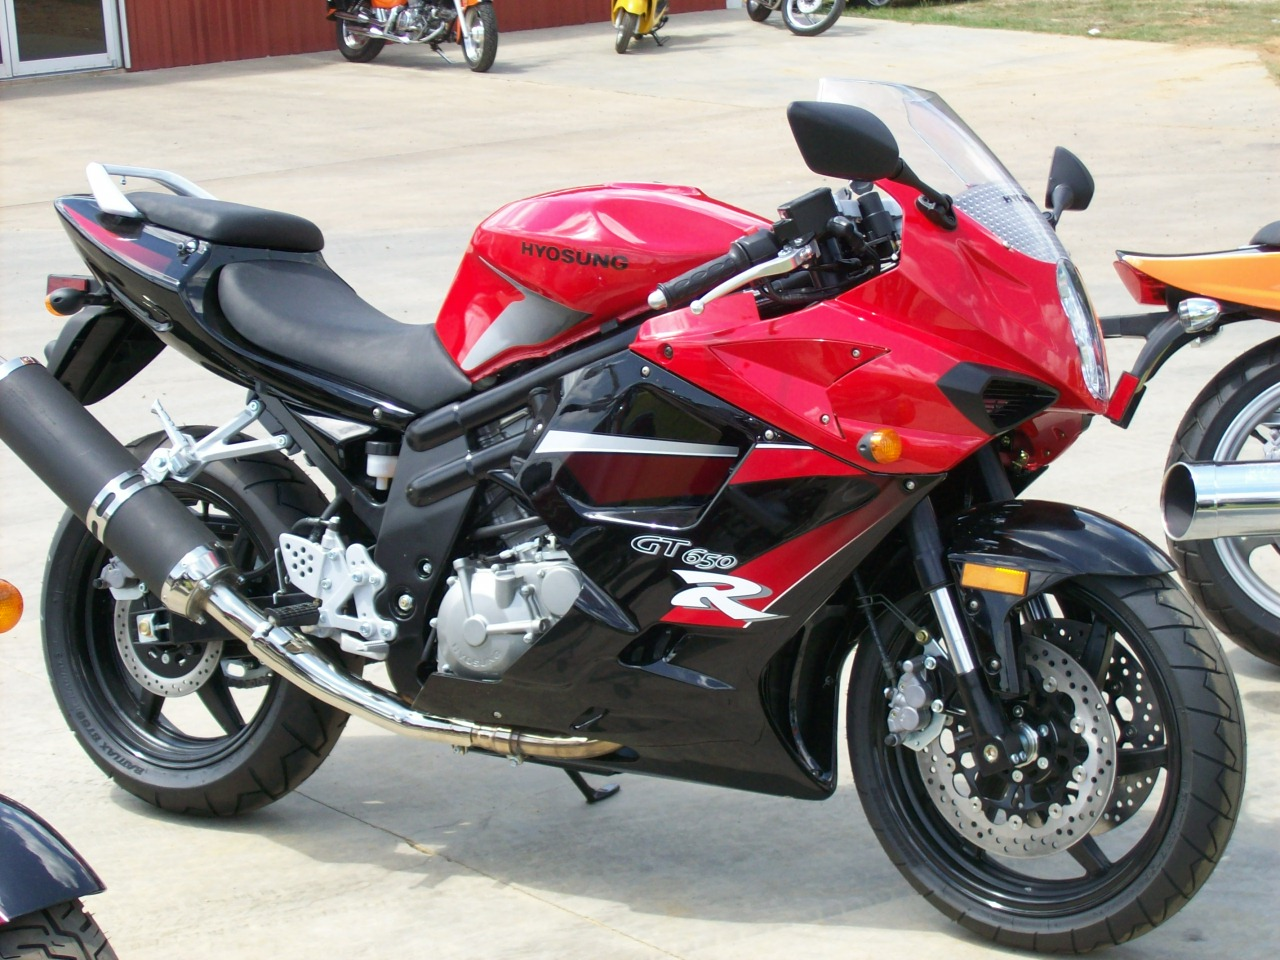 Hyosung gt250 photo - 1